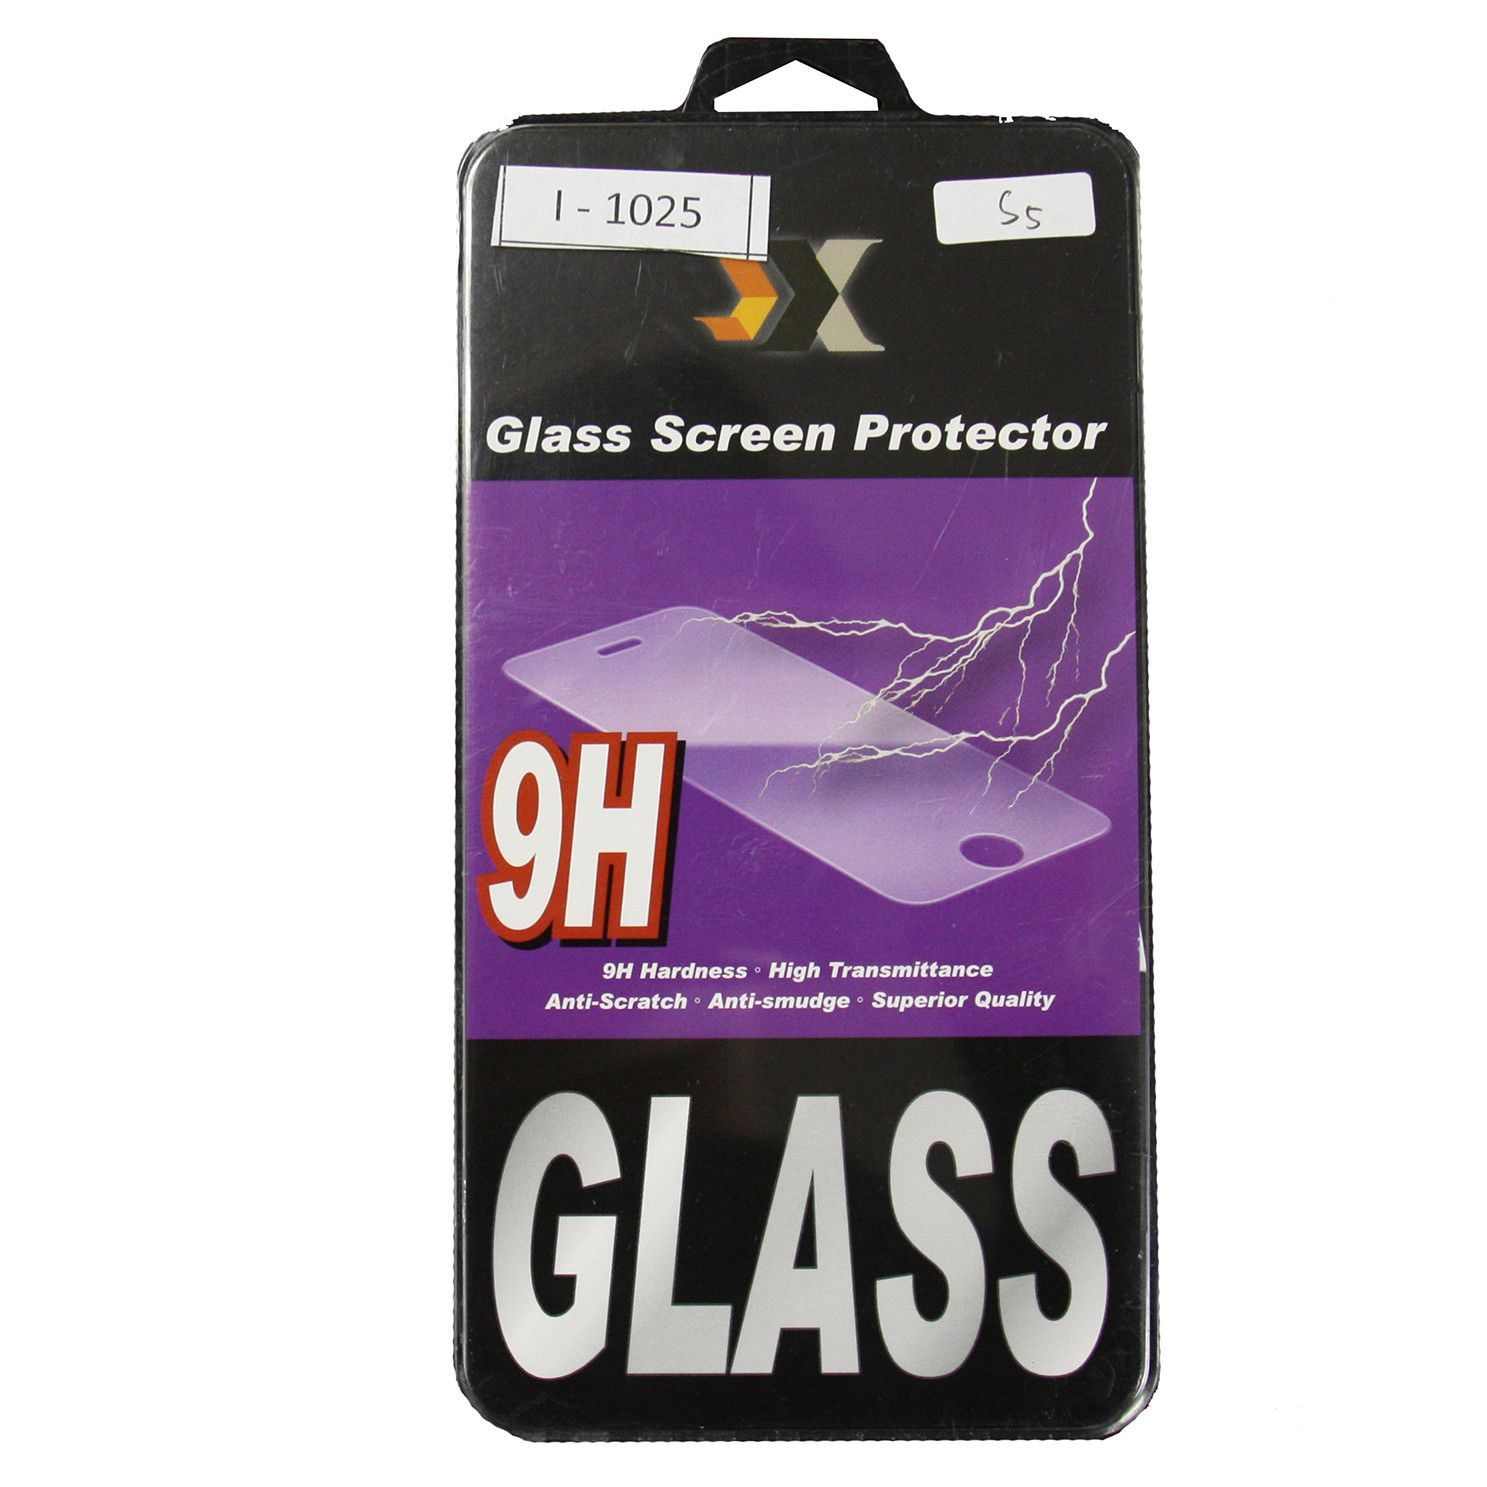 Galaxy s5 glass screen protector glass screen protector